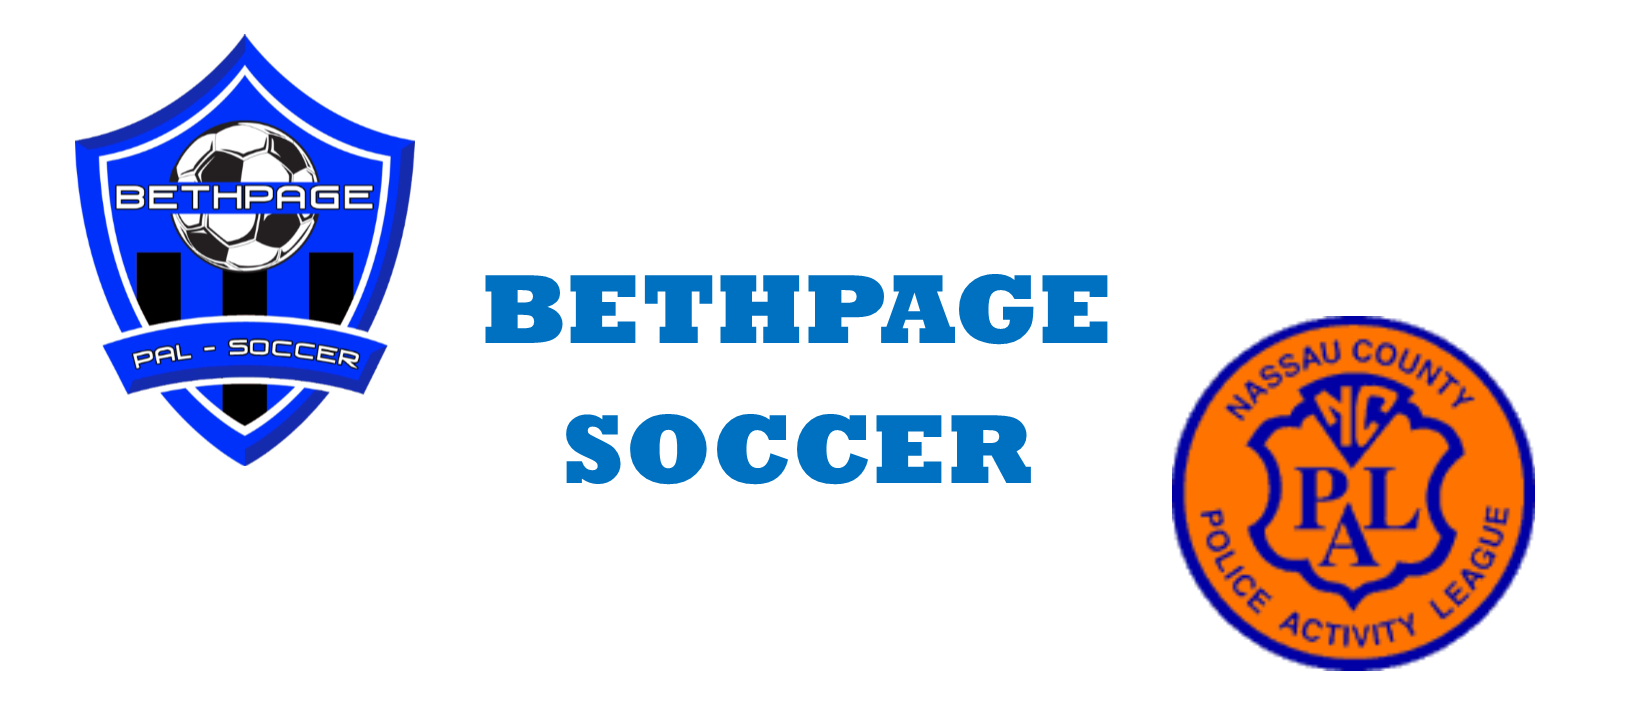 bethpage girls Bethpage high school, bethpage, new york 1k likes bethpage high school is the only high school in bethpage, new york located in nassau county on long.